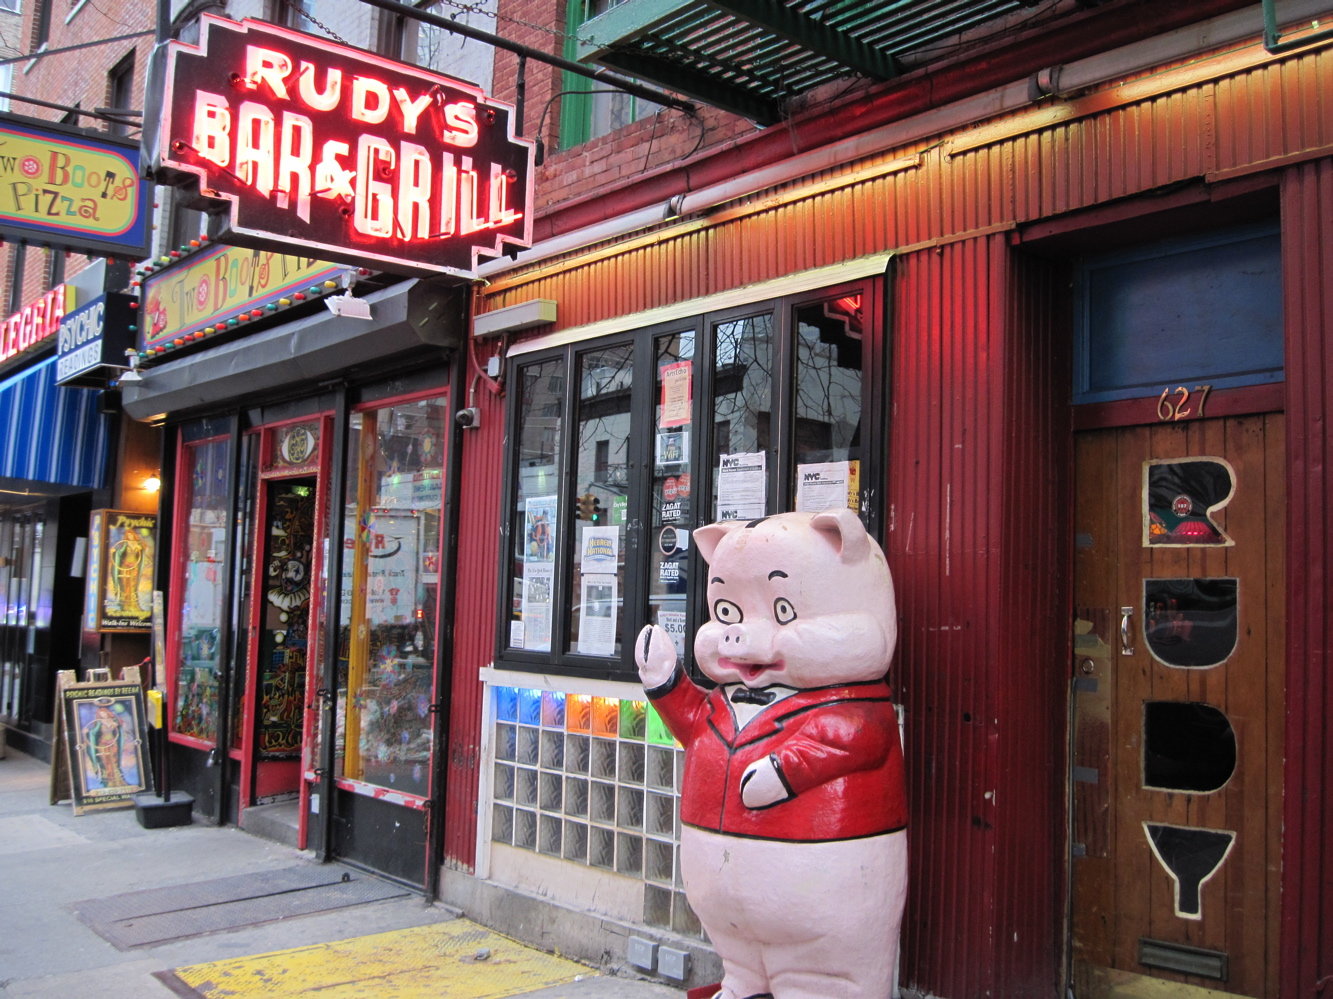 Mitch Broder's Vintage New York: Rudy's Bar and Grill: How I